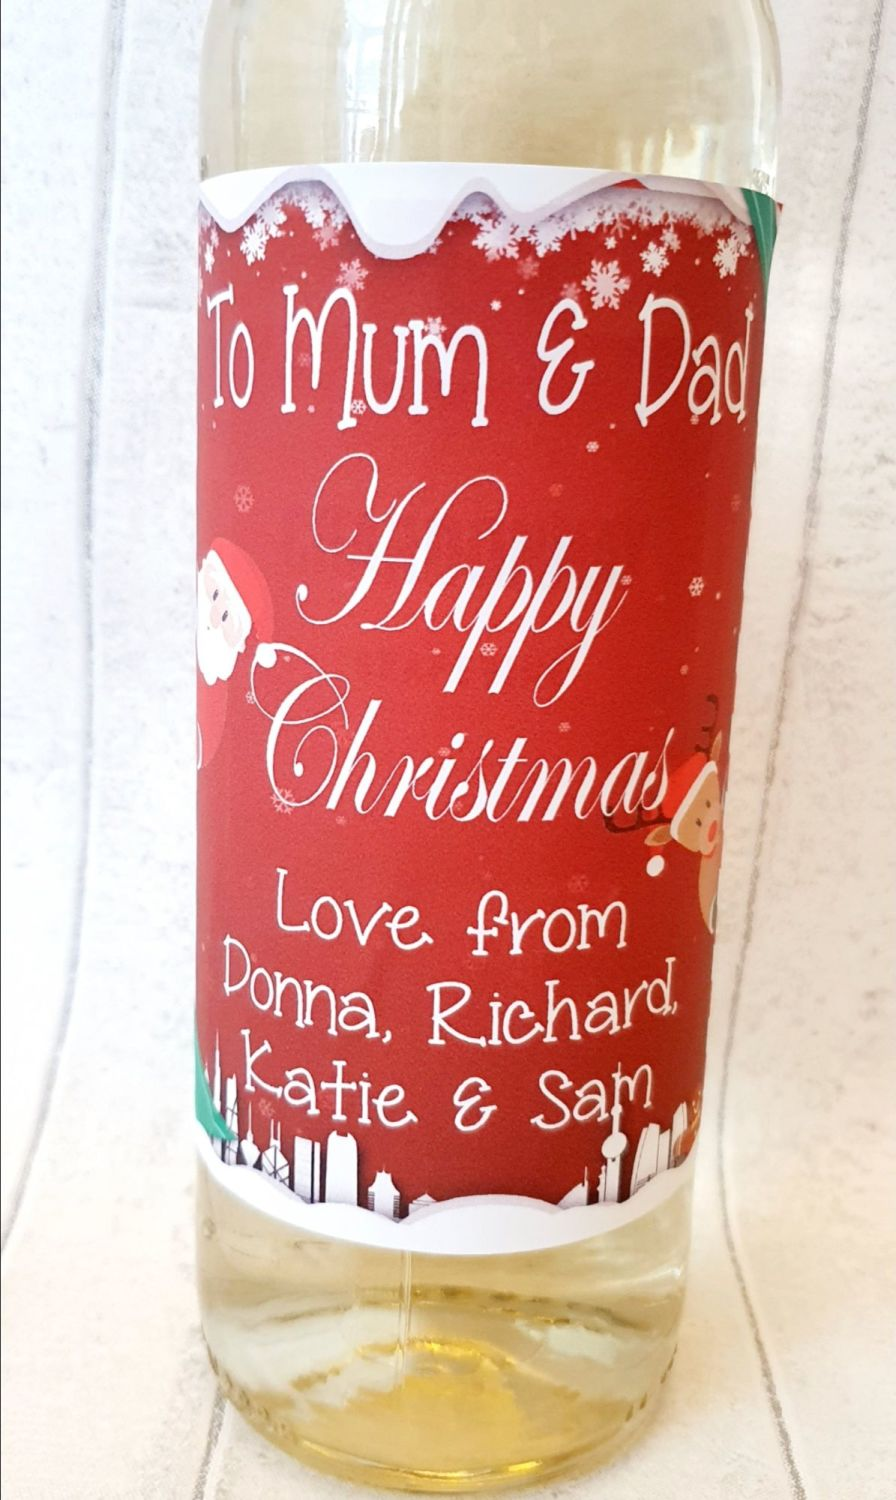 Personalised photo wine bottle label for Christmas